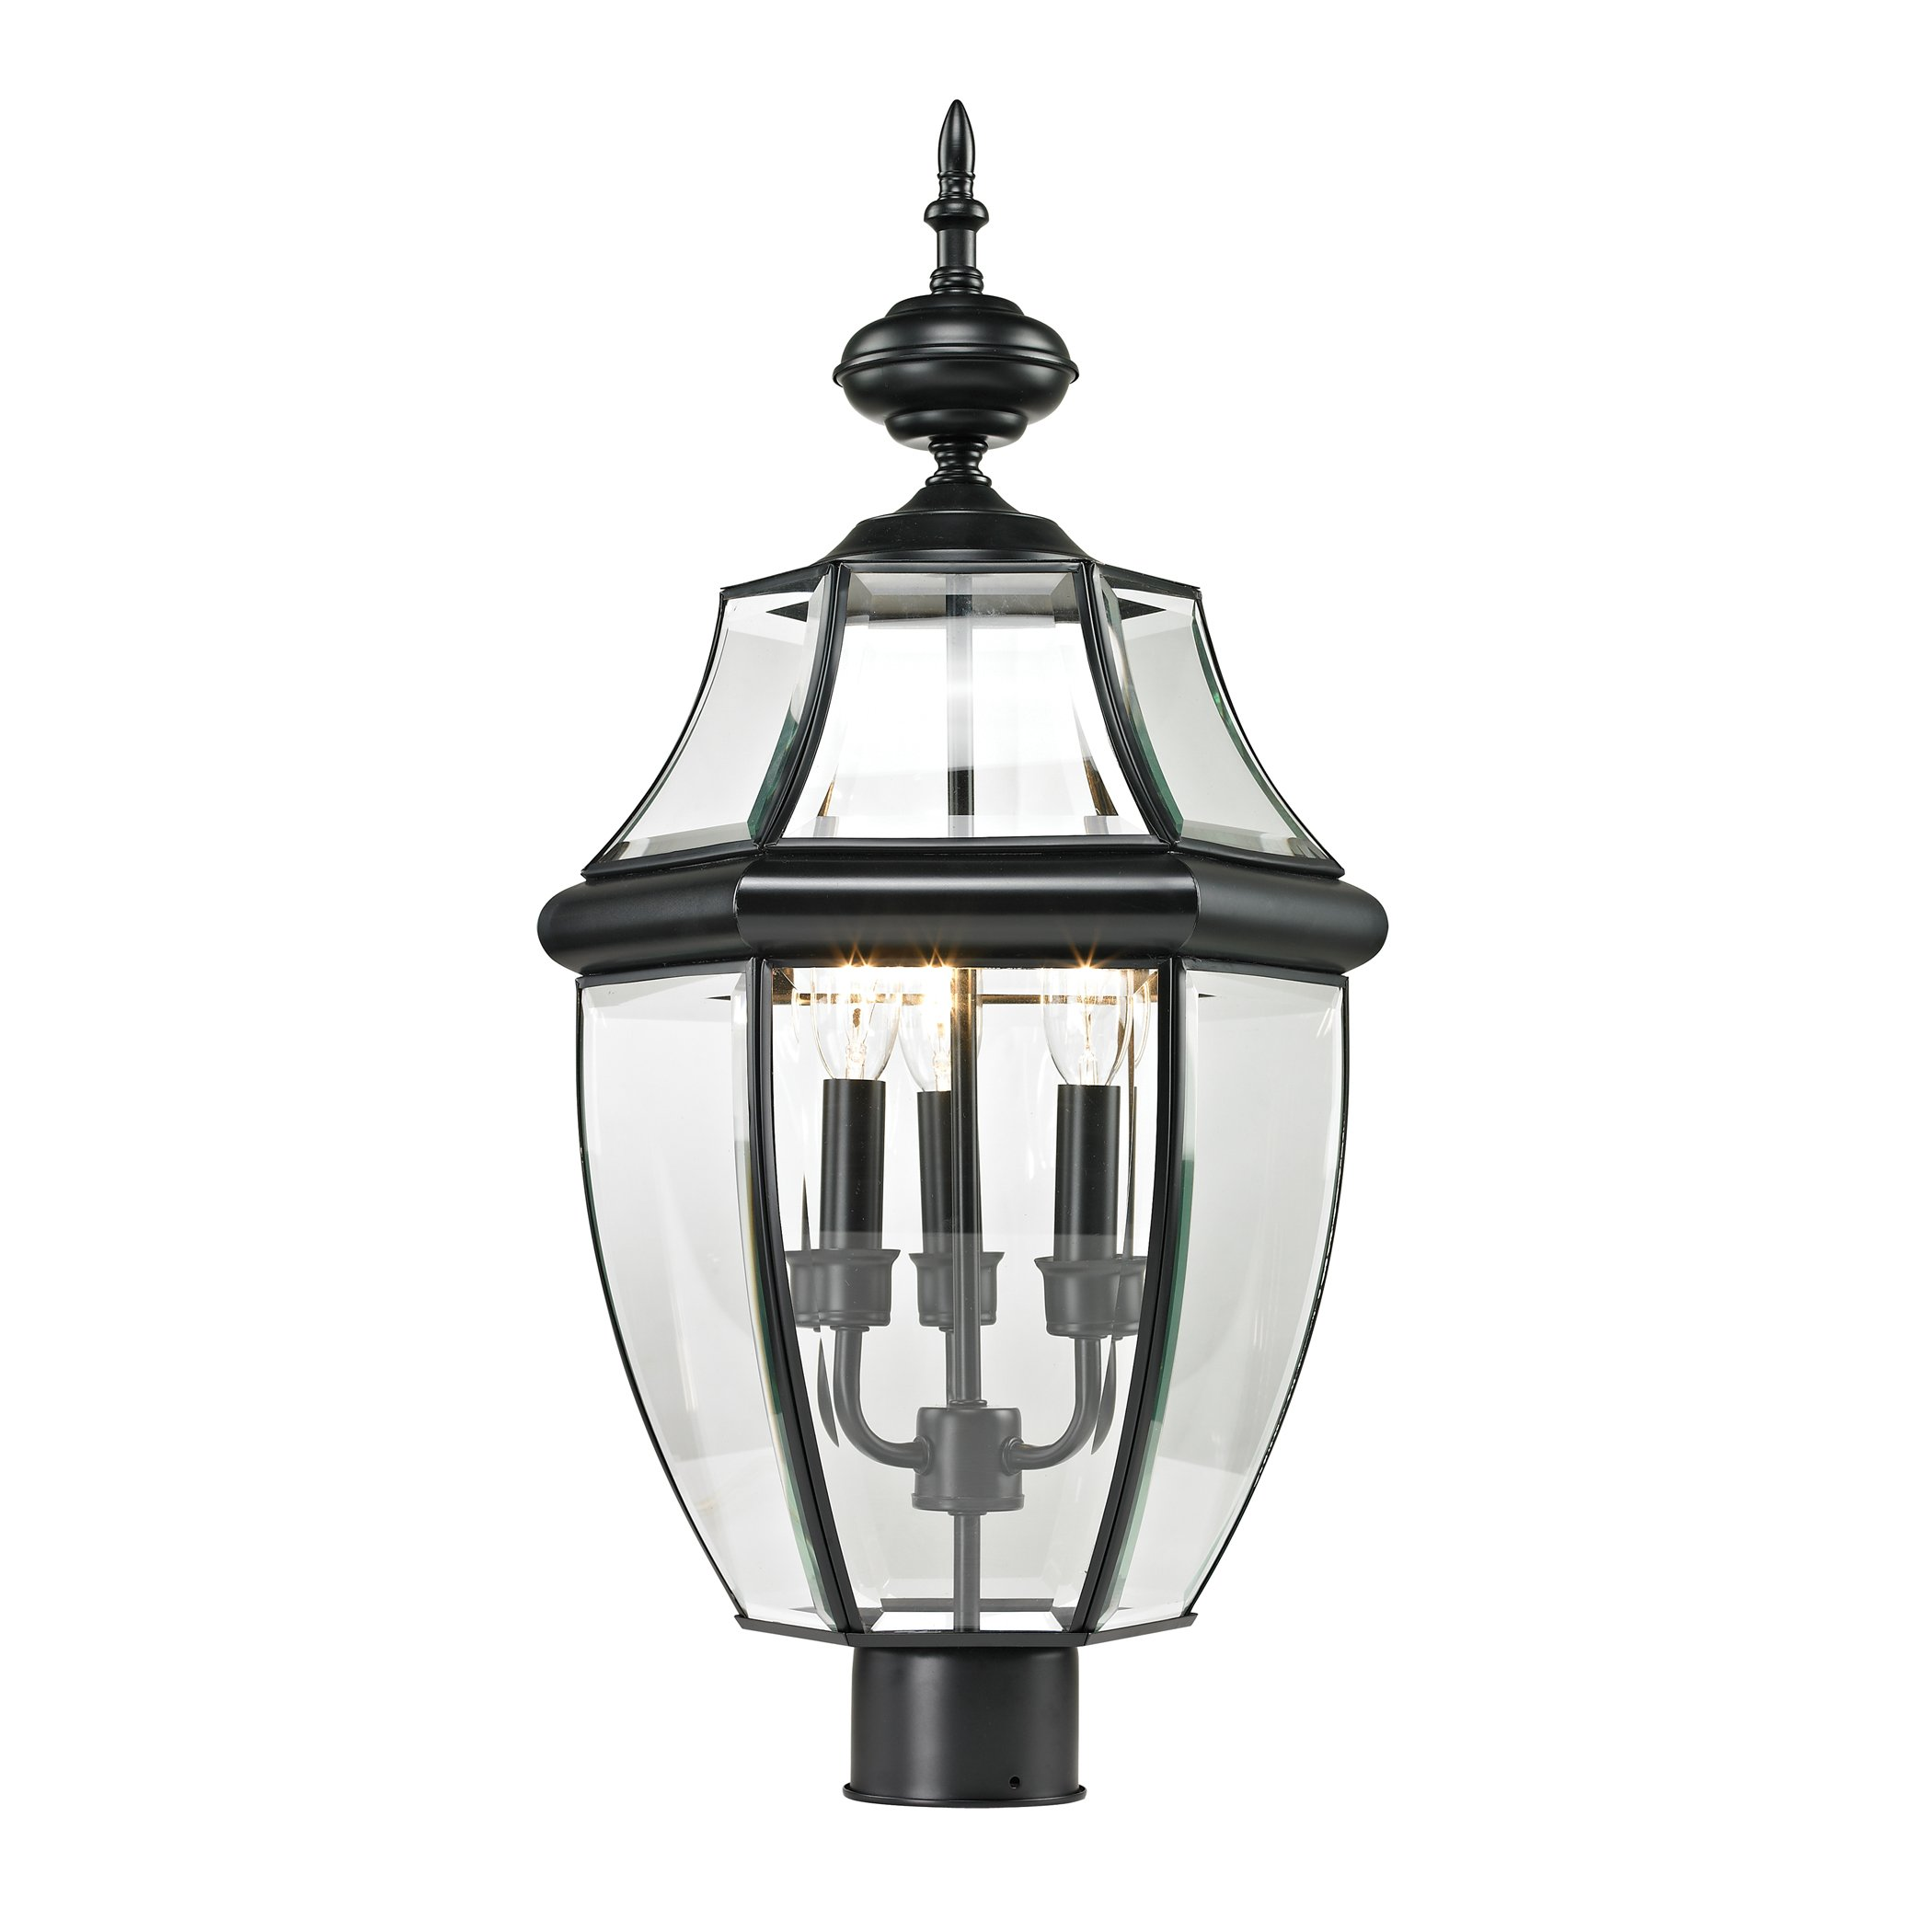 Thomas Lighting  Ashford Post Lantern, Large, Black Finish